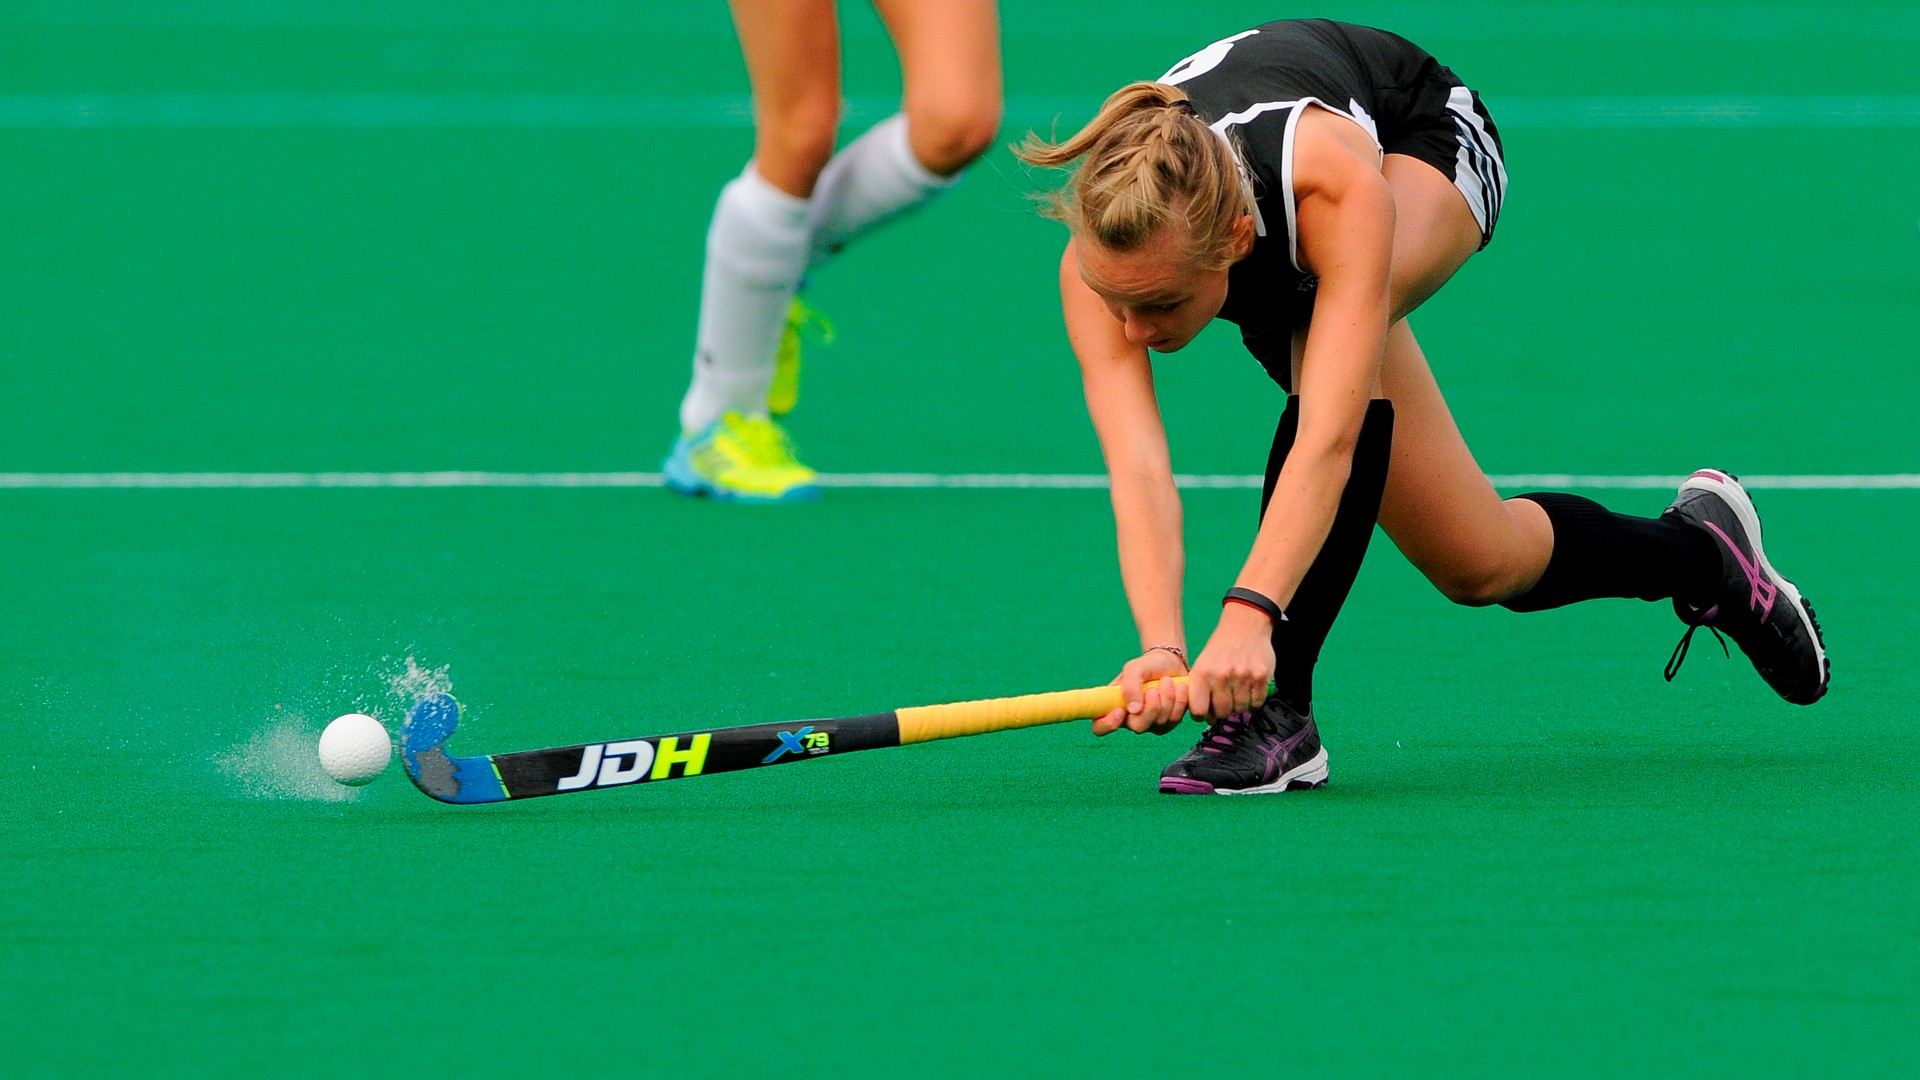 1920x1080 - Field hockey Wallpapers 11